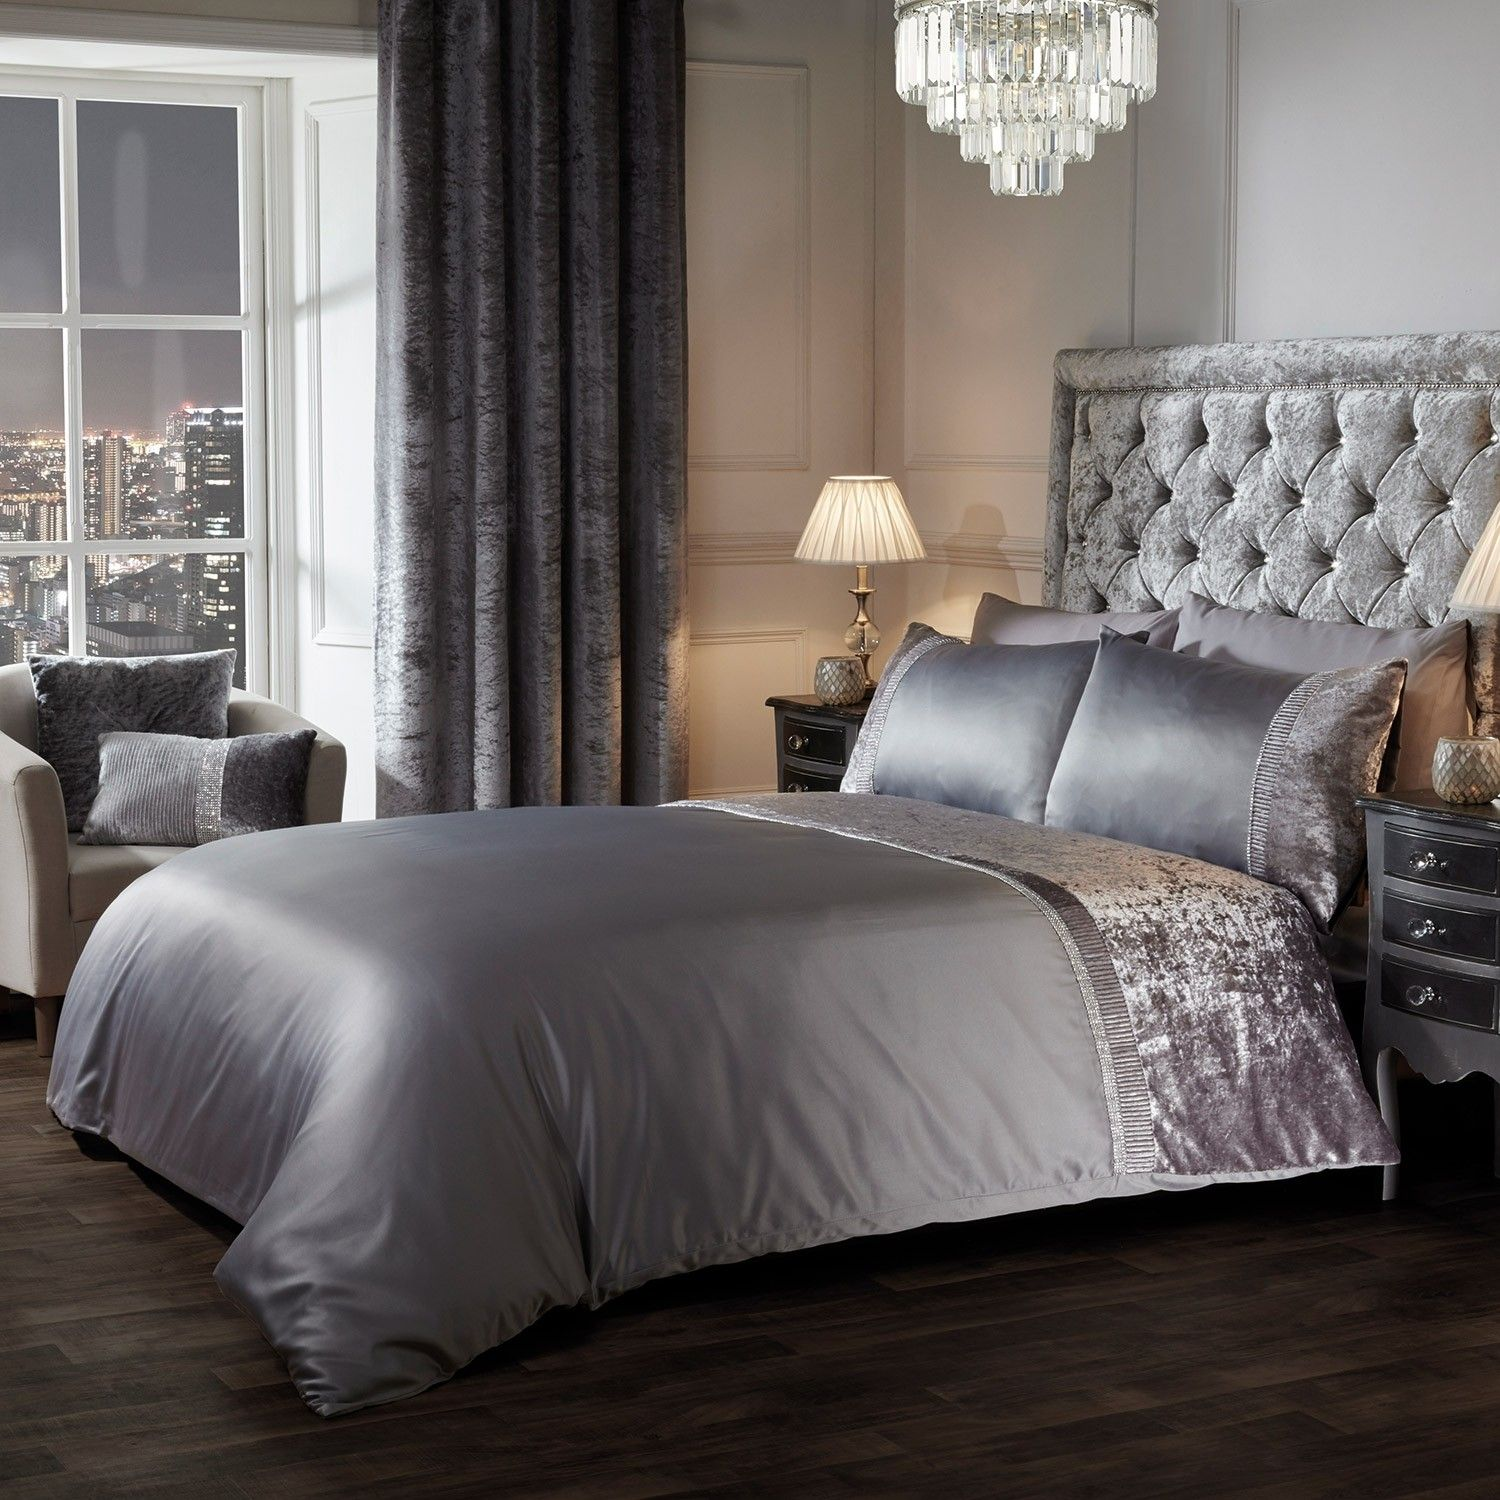 Julian Charles Bedding Review